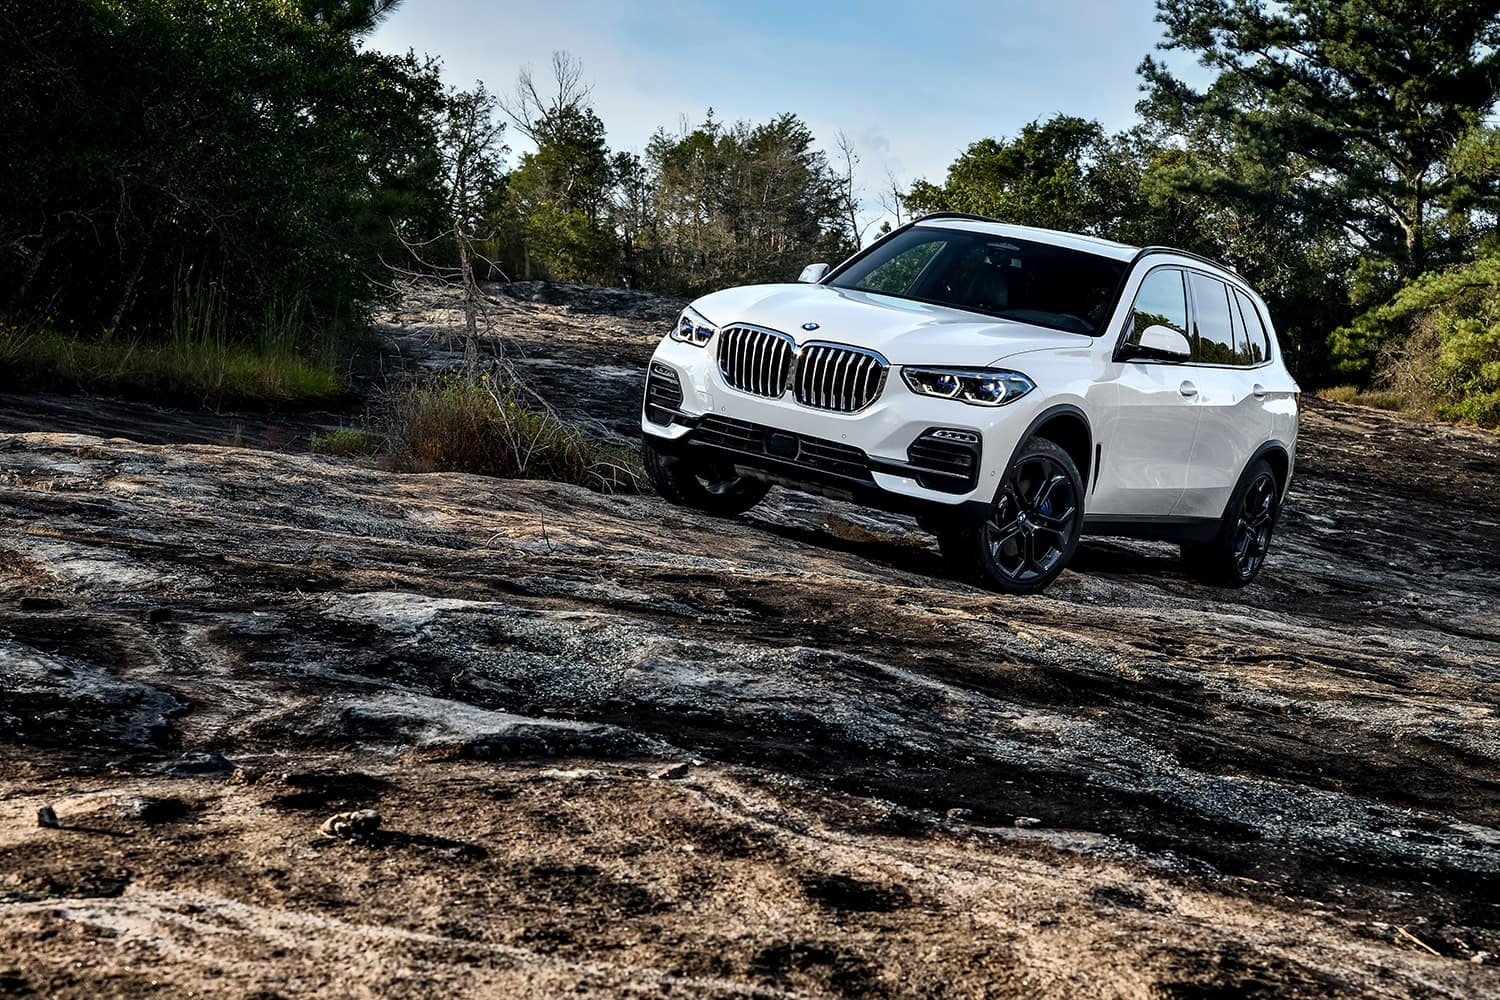 BMW X5 Off-Road